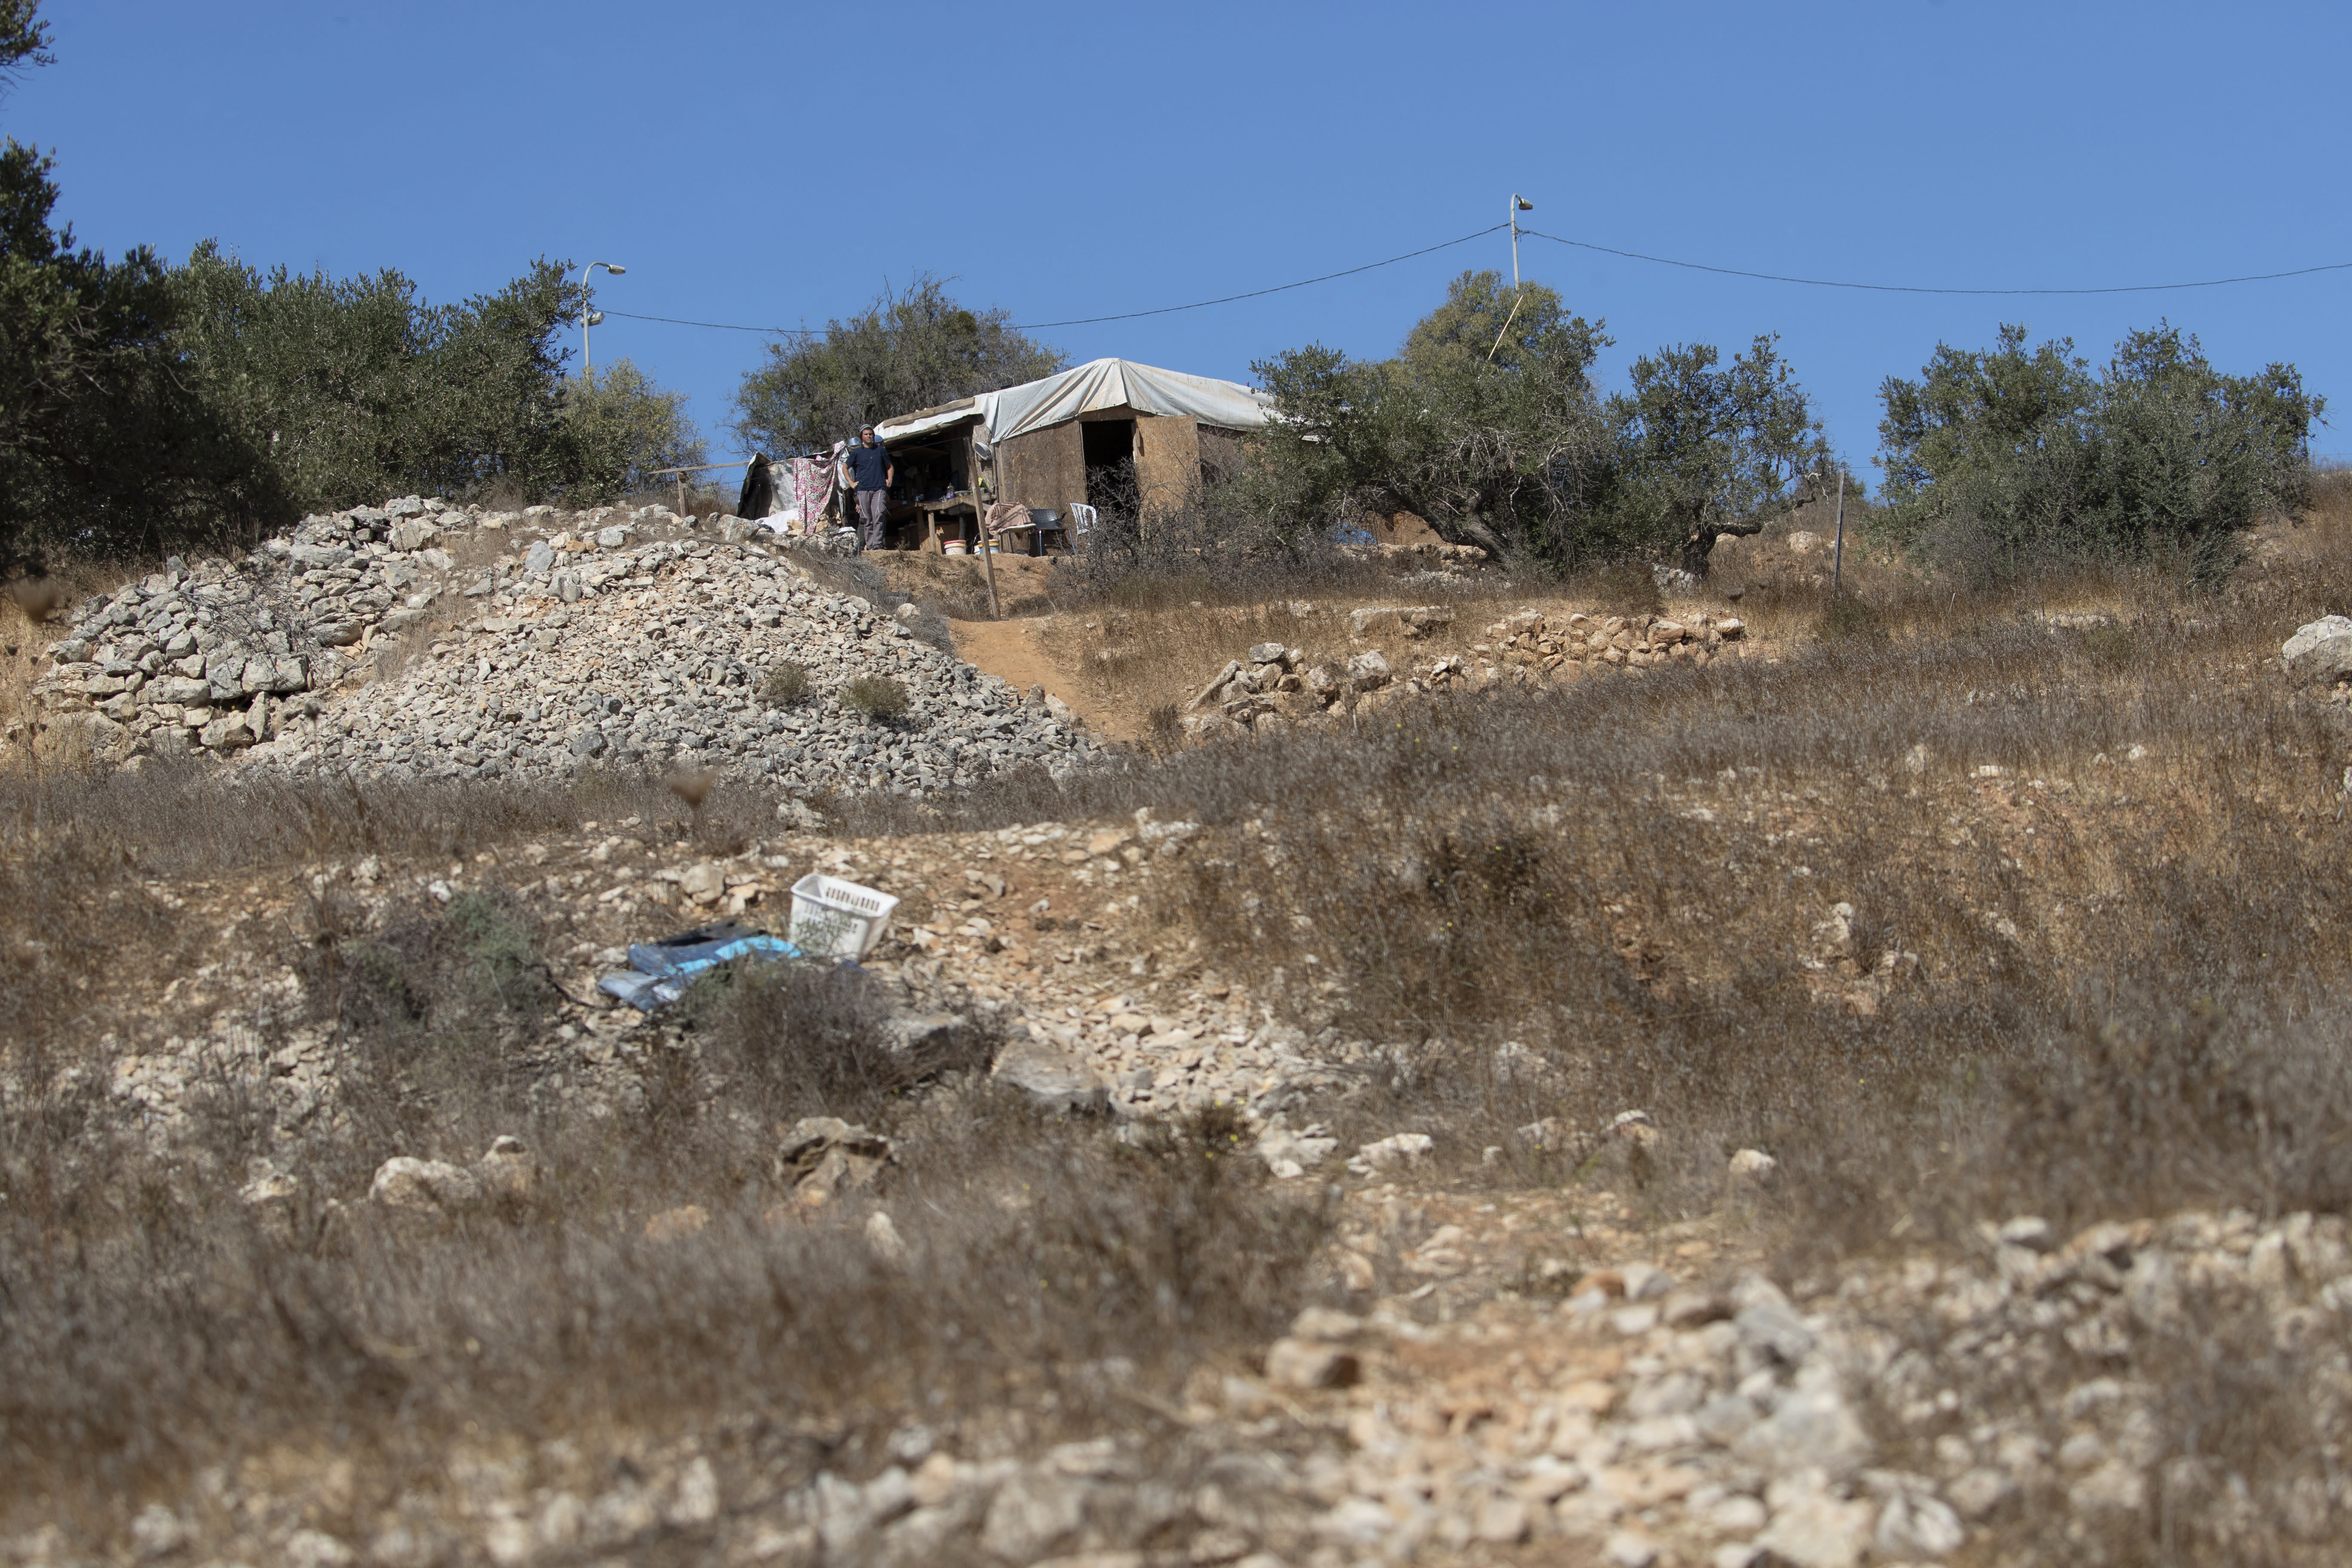 A Jewish settler watches from the settlers outpost that overlooks Palestinian olive groves, in the West Bank village of Burqa, East of Ramallah, Friday, Oct. 16, 2020. Palestinians clashed with Israeli border police in the West Bank on Friday during their attempt to reach and harvest their olive groves near a Jewish settlers outpost. (AP Photo/Nasser Nasser)